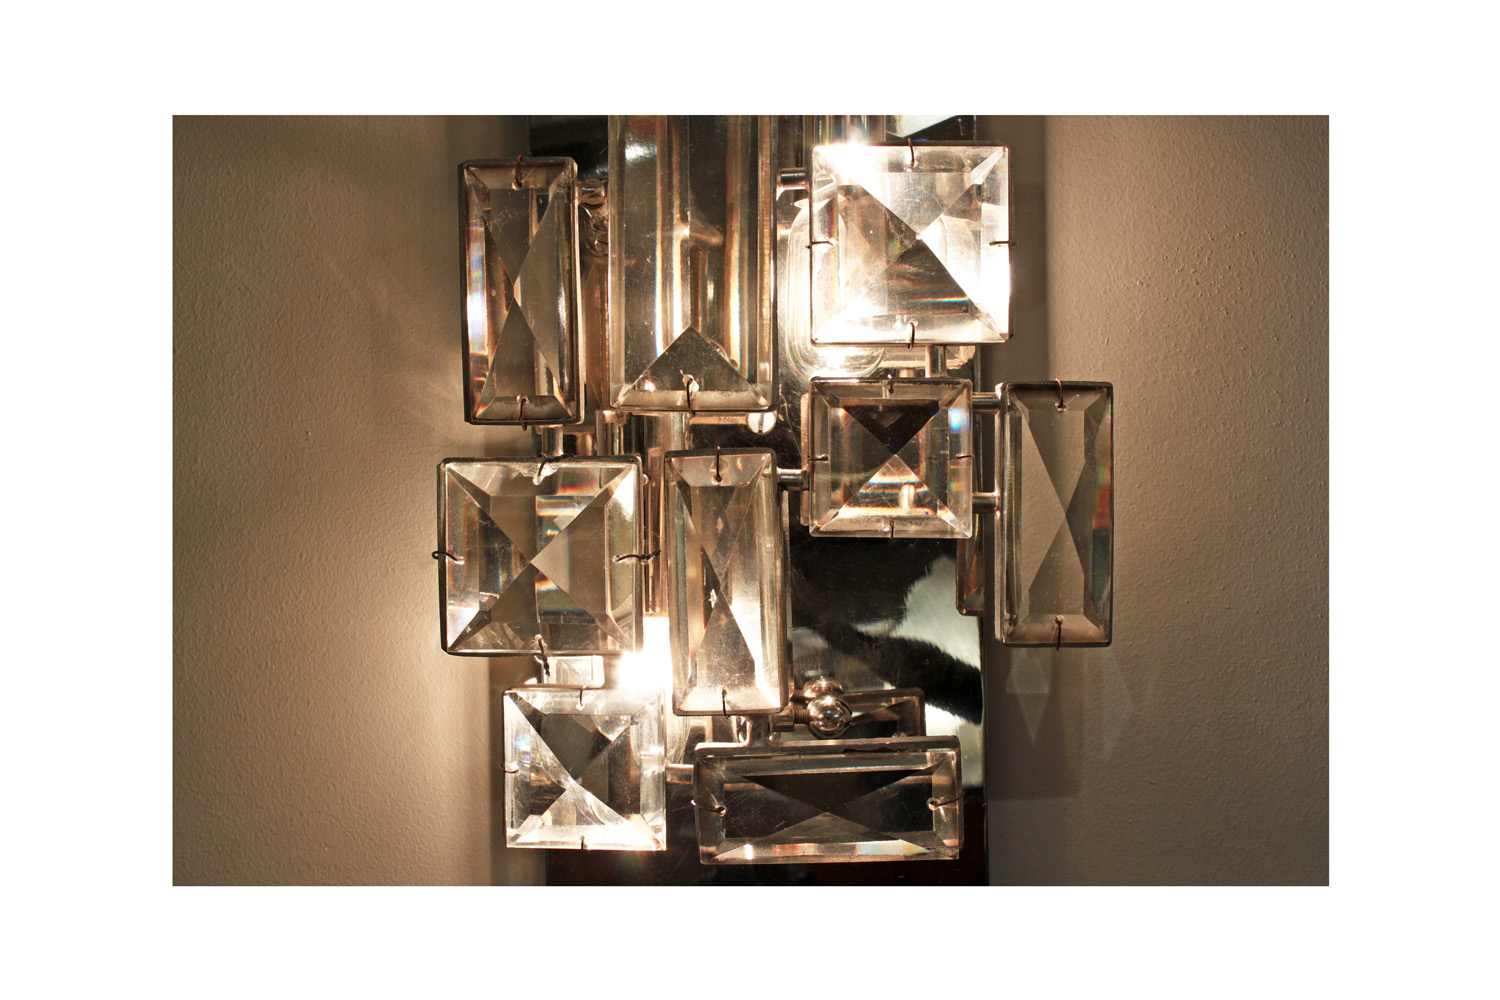 Lobmeyr 65 sml faceted crystals sconce29 hires main detail 4.jpg